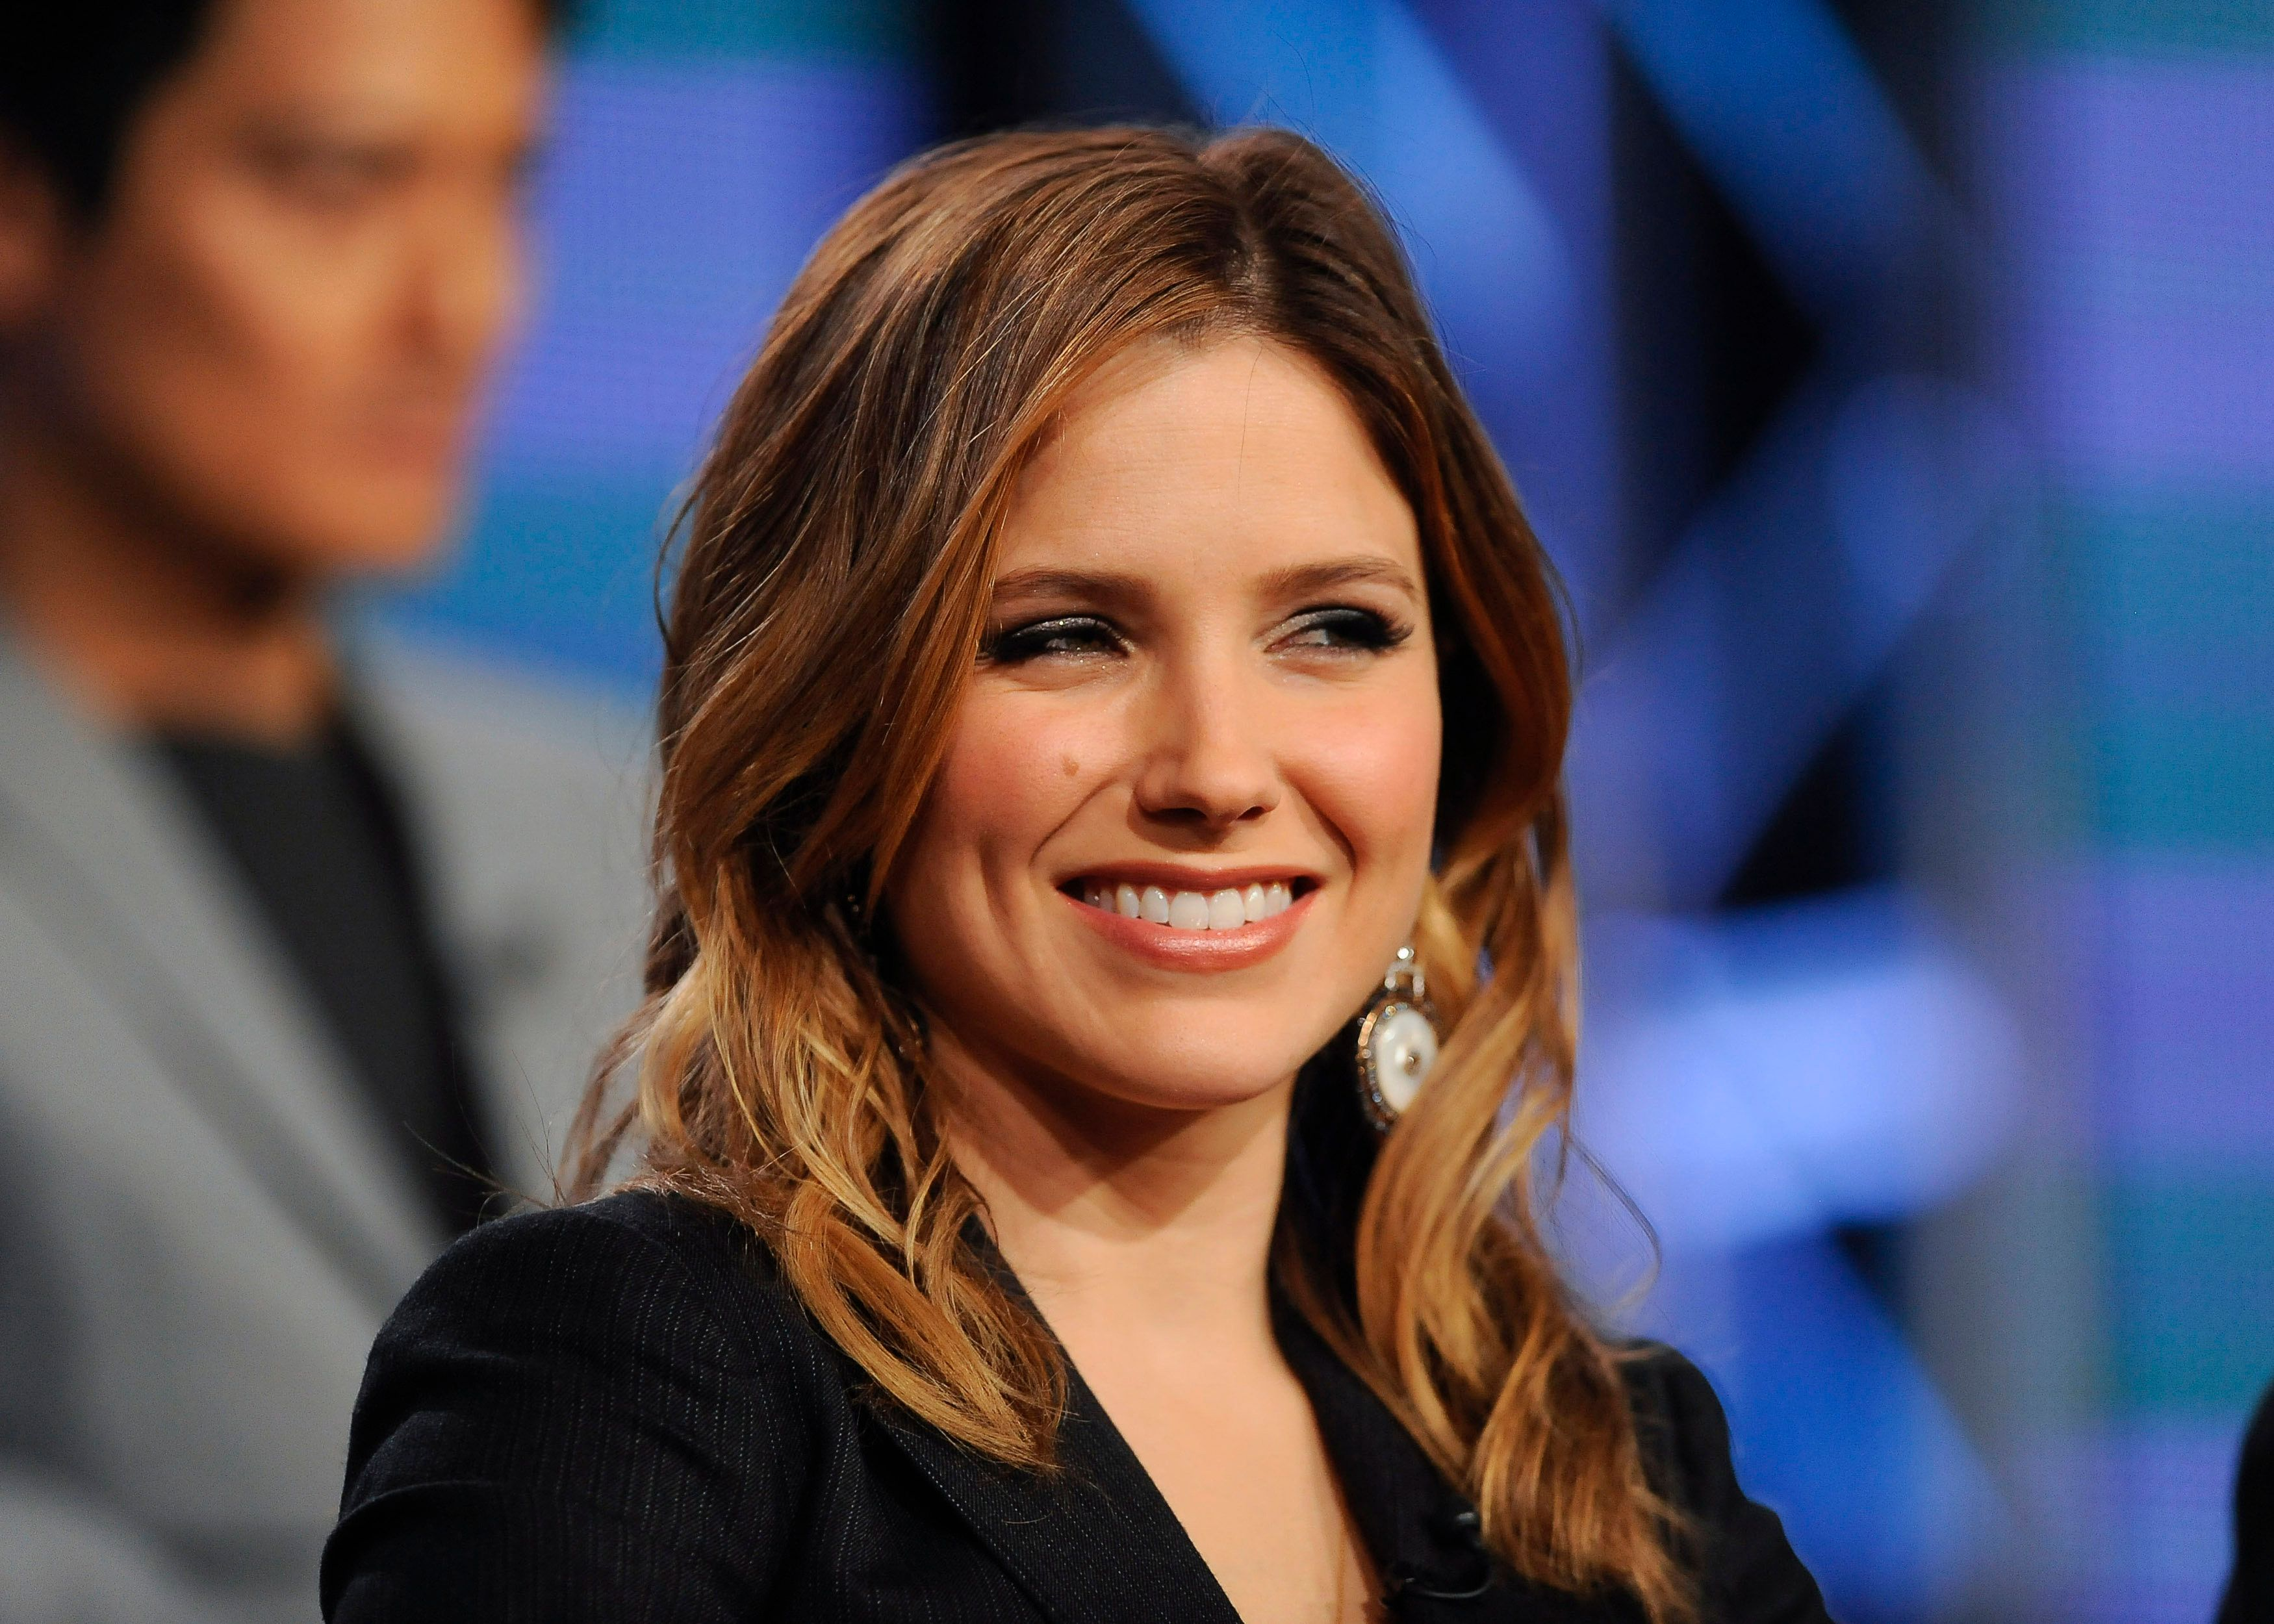 """Actress Sophia Bush from the series """"Chicago P.D."""" takes part in a panel discussion at the NBC portion of the 2014 Winter Press Tour for the Television Critics Association (TCA) in Pasadena, California, January 19, 2014. REUTERS/Gus Ruelas (UNITED STATES - Tags: ENTERTAINMENT HEADSHOT)"""